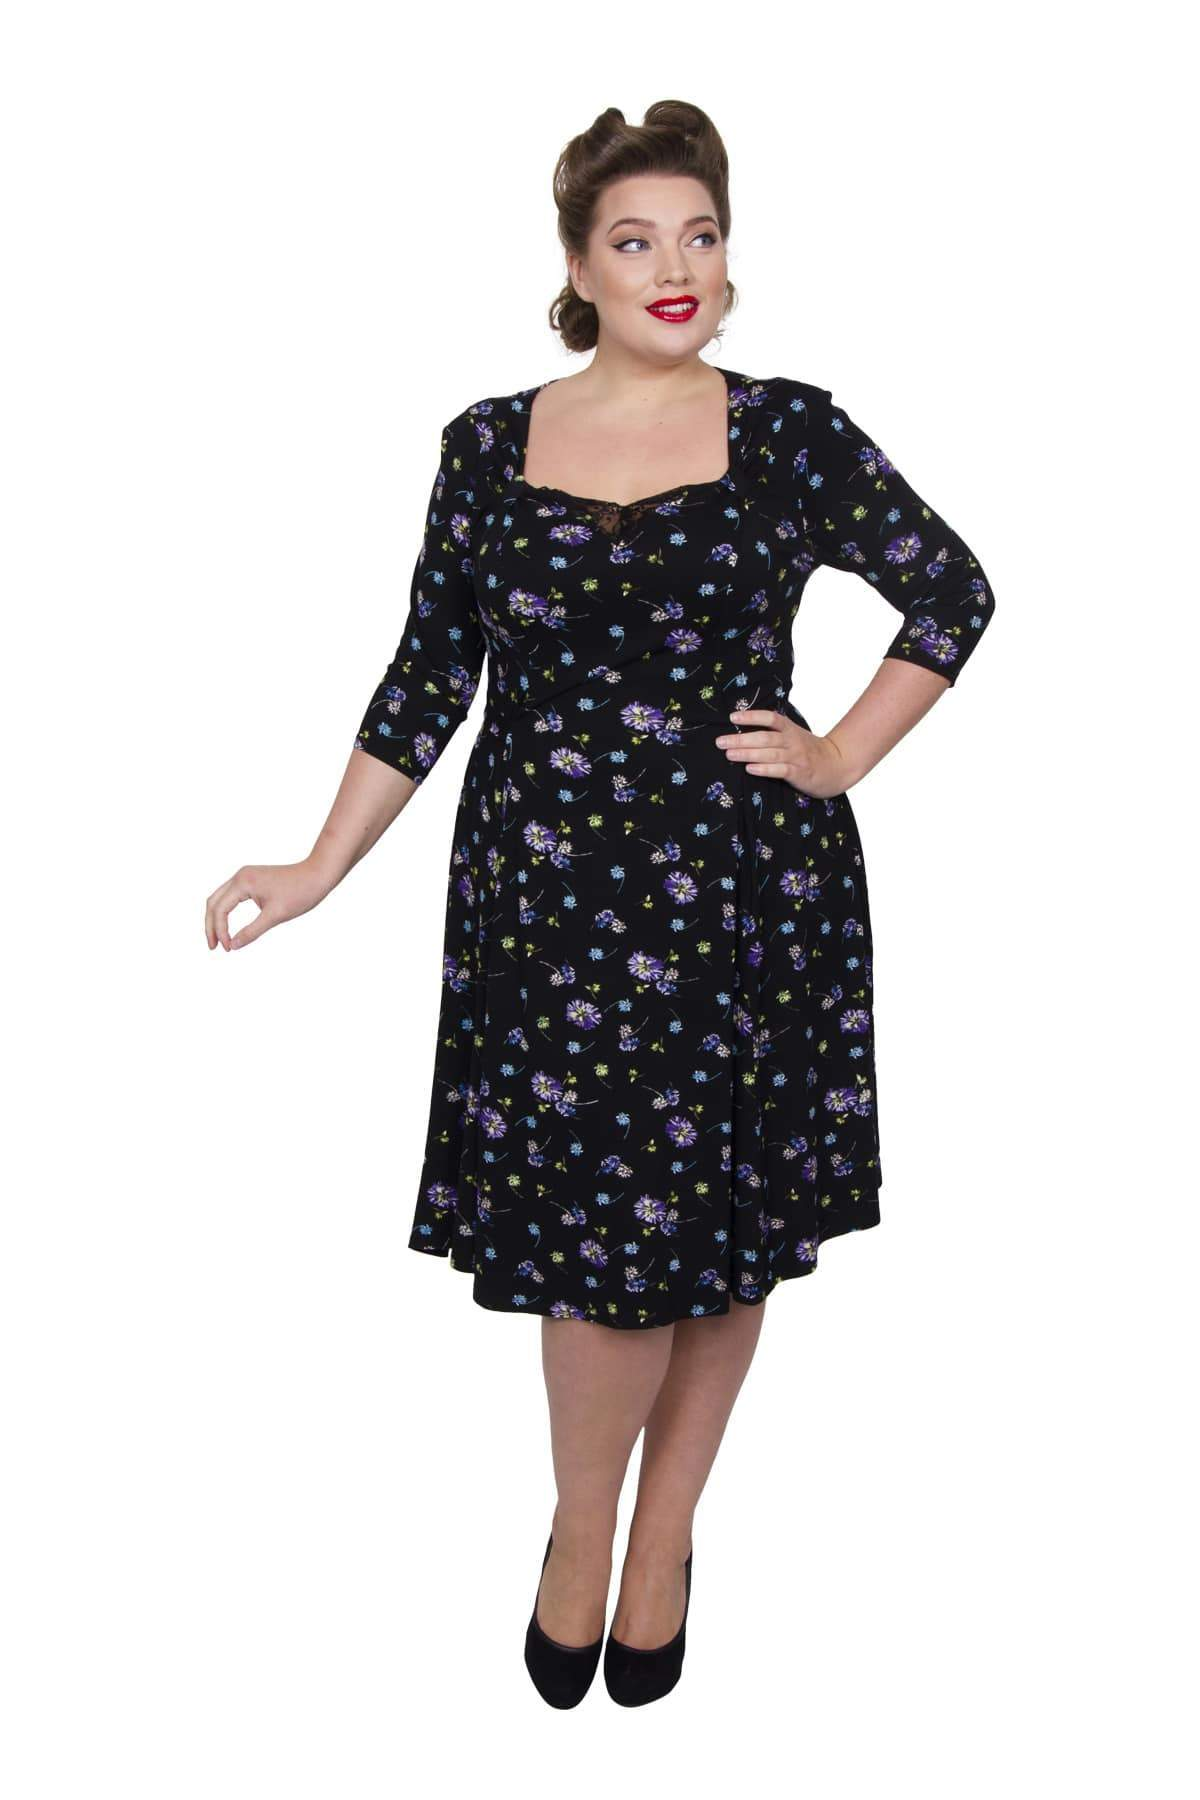 1940s Plus Size Fashion: Style Advice from 1940s to Today Daisy Print Sweetheart Tab 40s Dress - BLKLILWHT  14 �60.00 AT vintagedancer.com